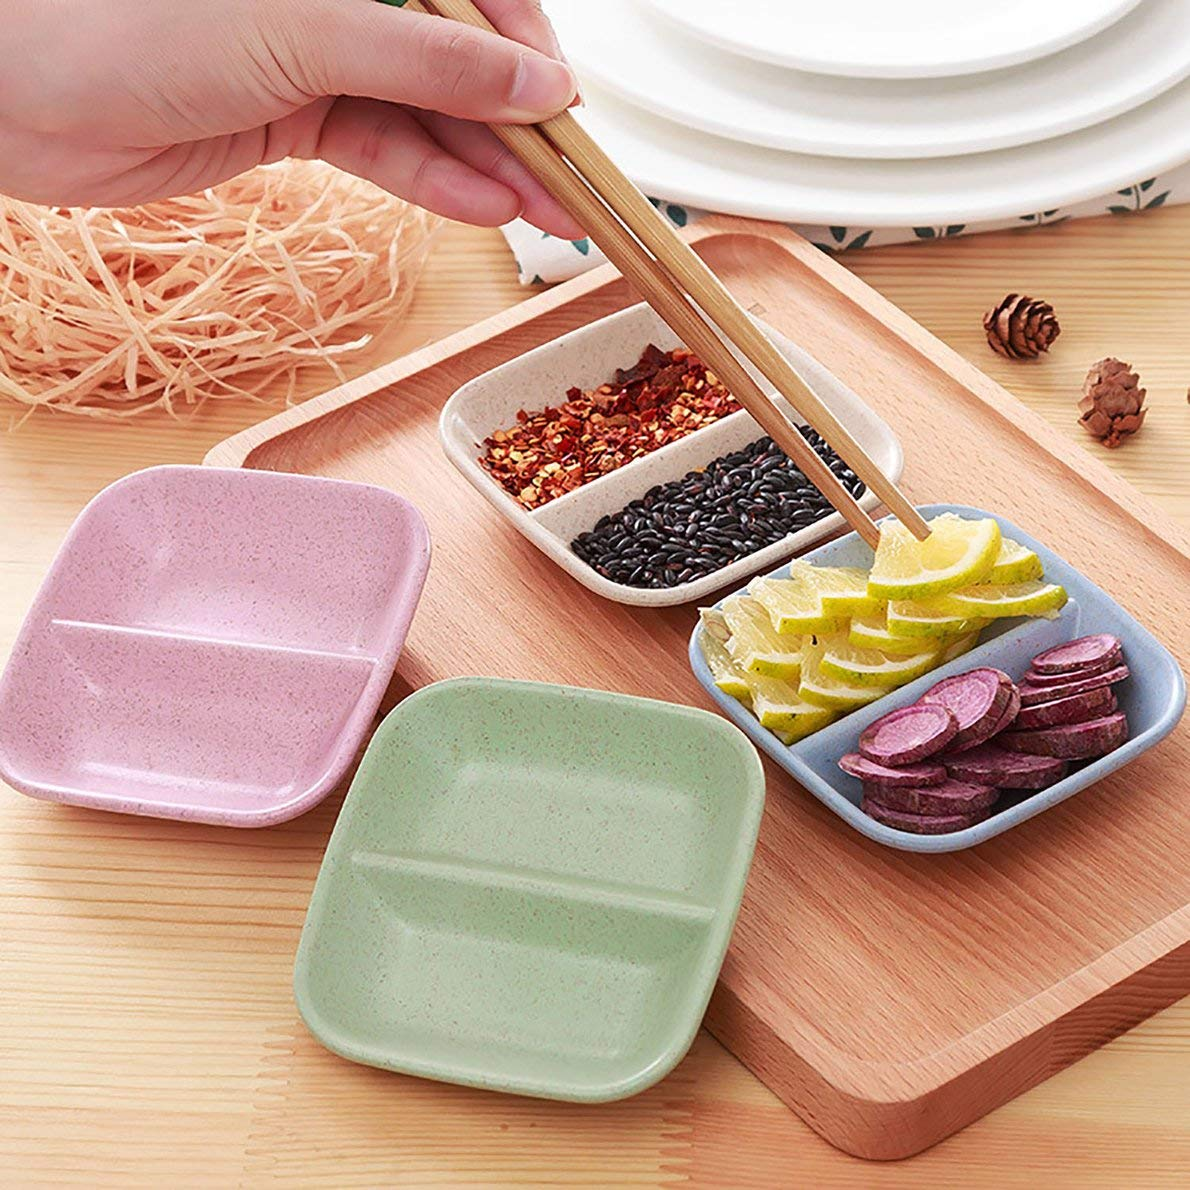 Creative Wheat Straw Seasoning Dish Japanese Style Sauce Vinegar Seasoning Pickles Snacks Small Dish Separate Small Dish Crispsounds